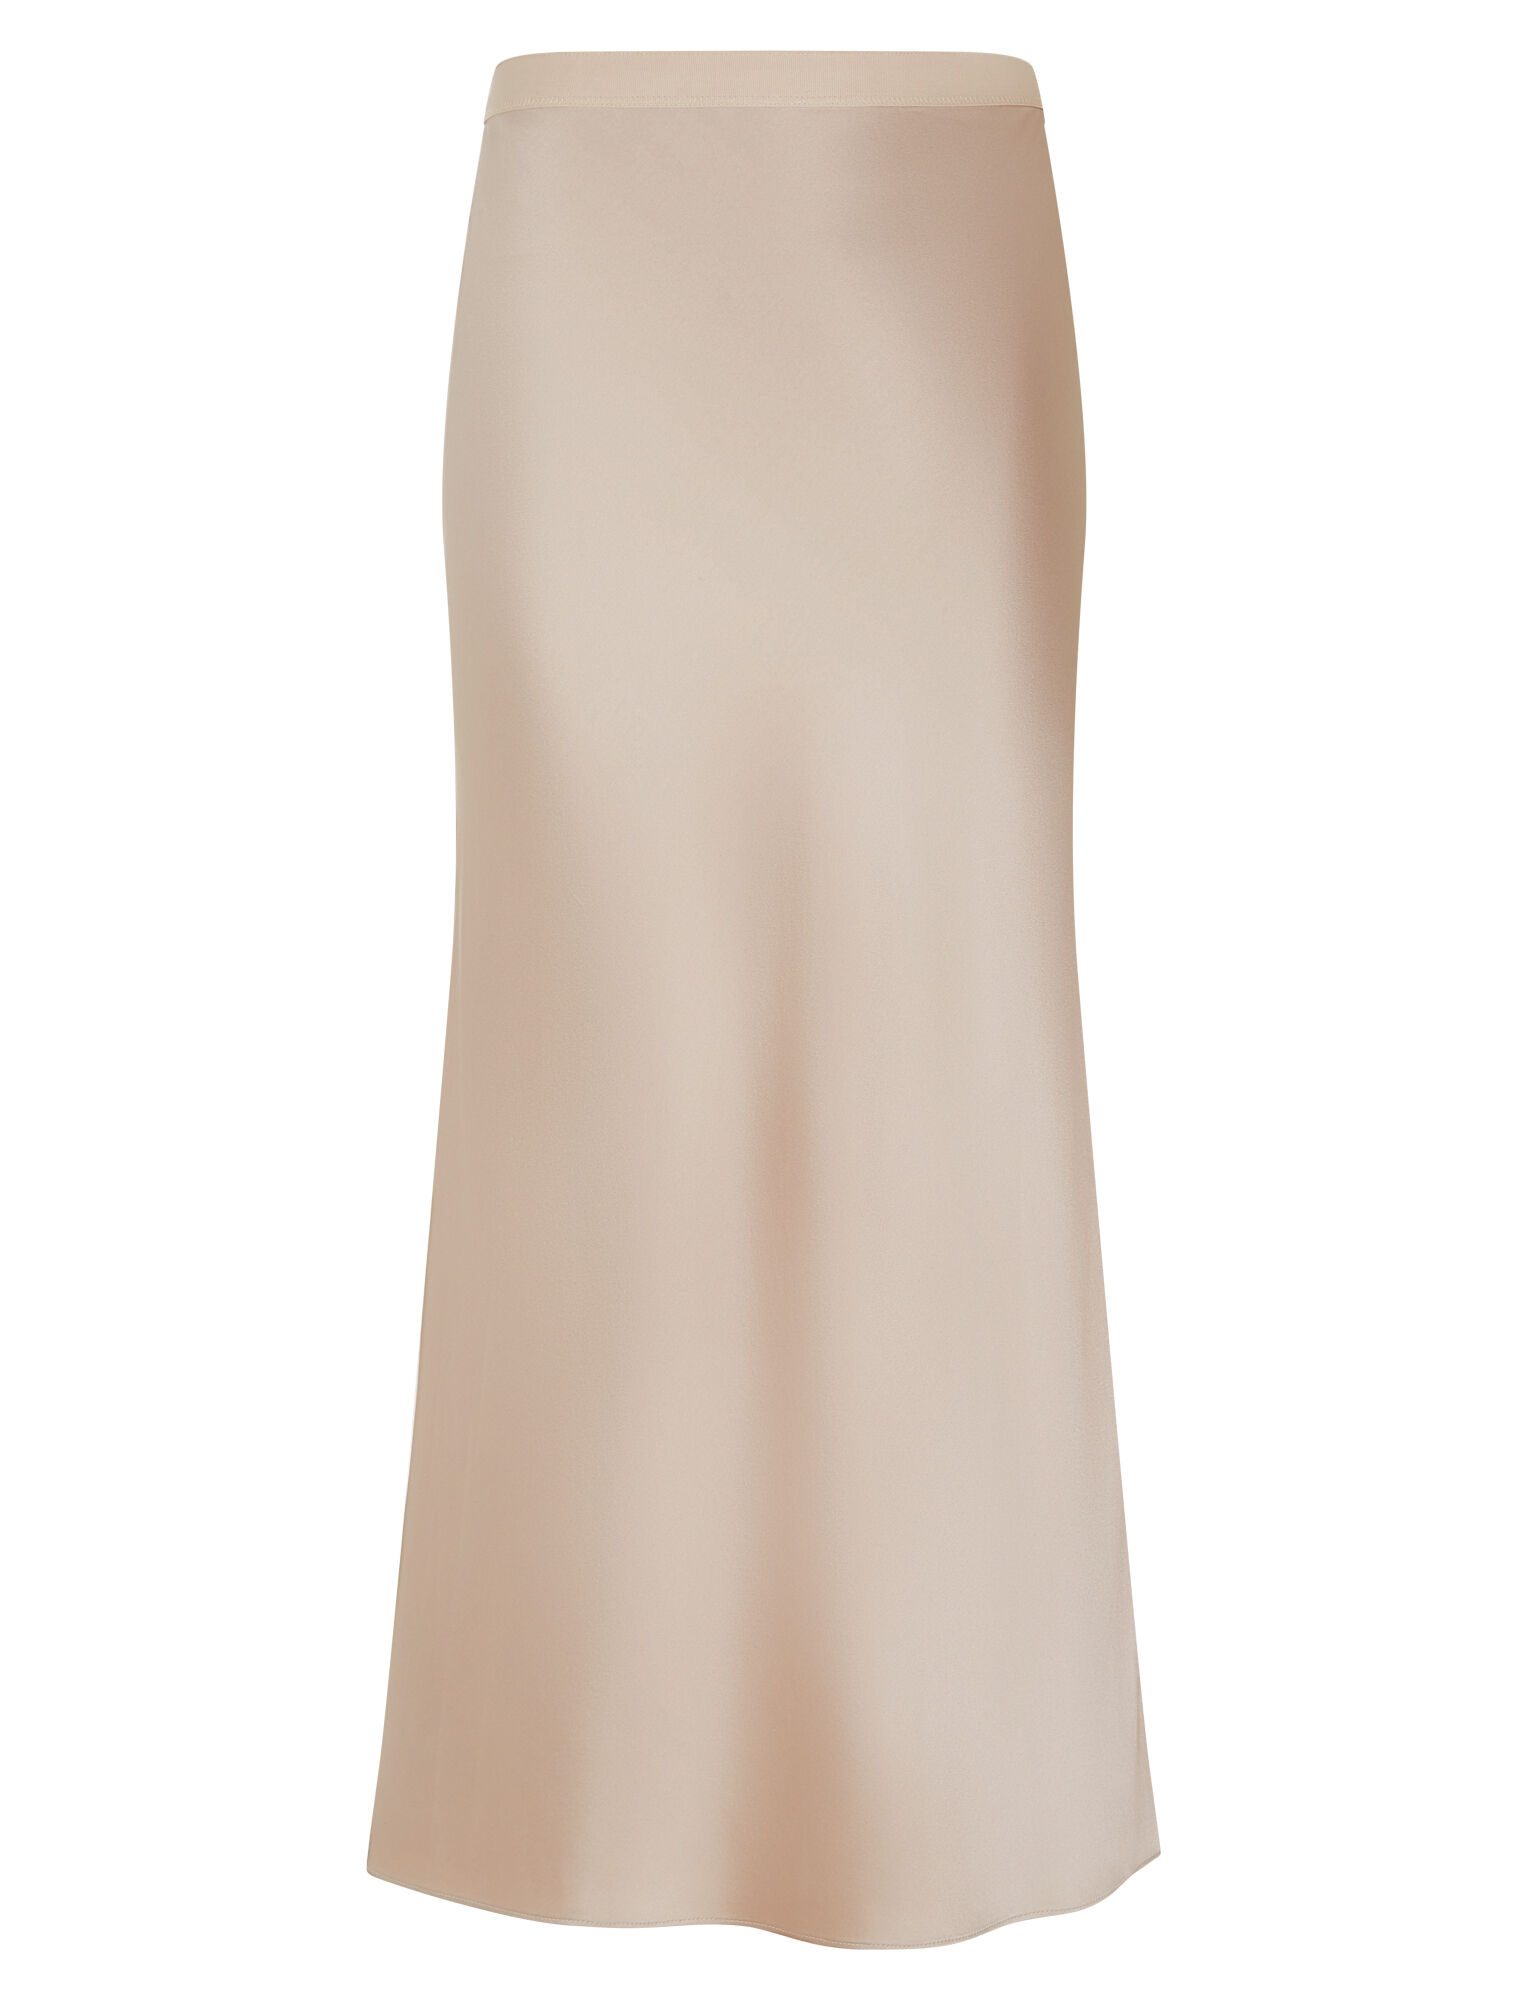 Hurst Silk Satin Skirt by Joseph